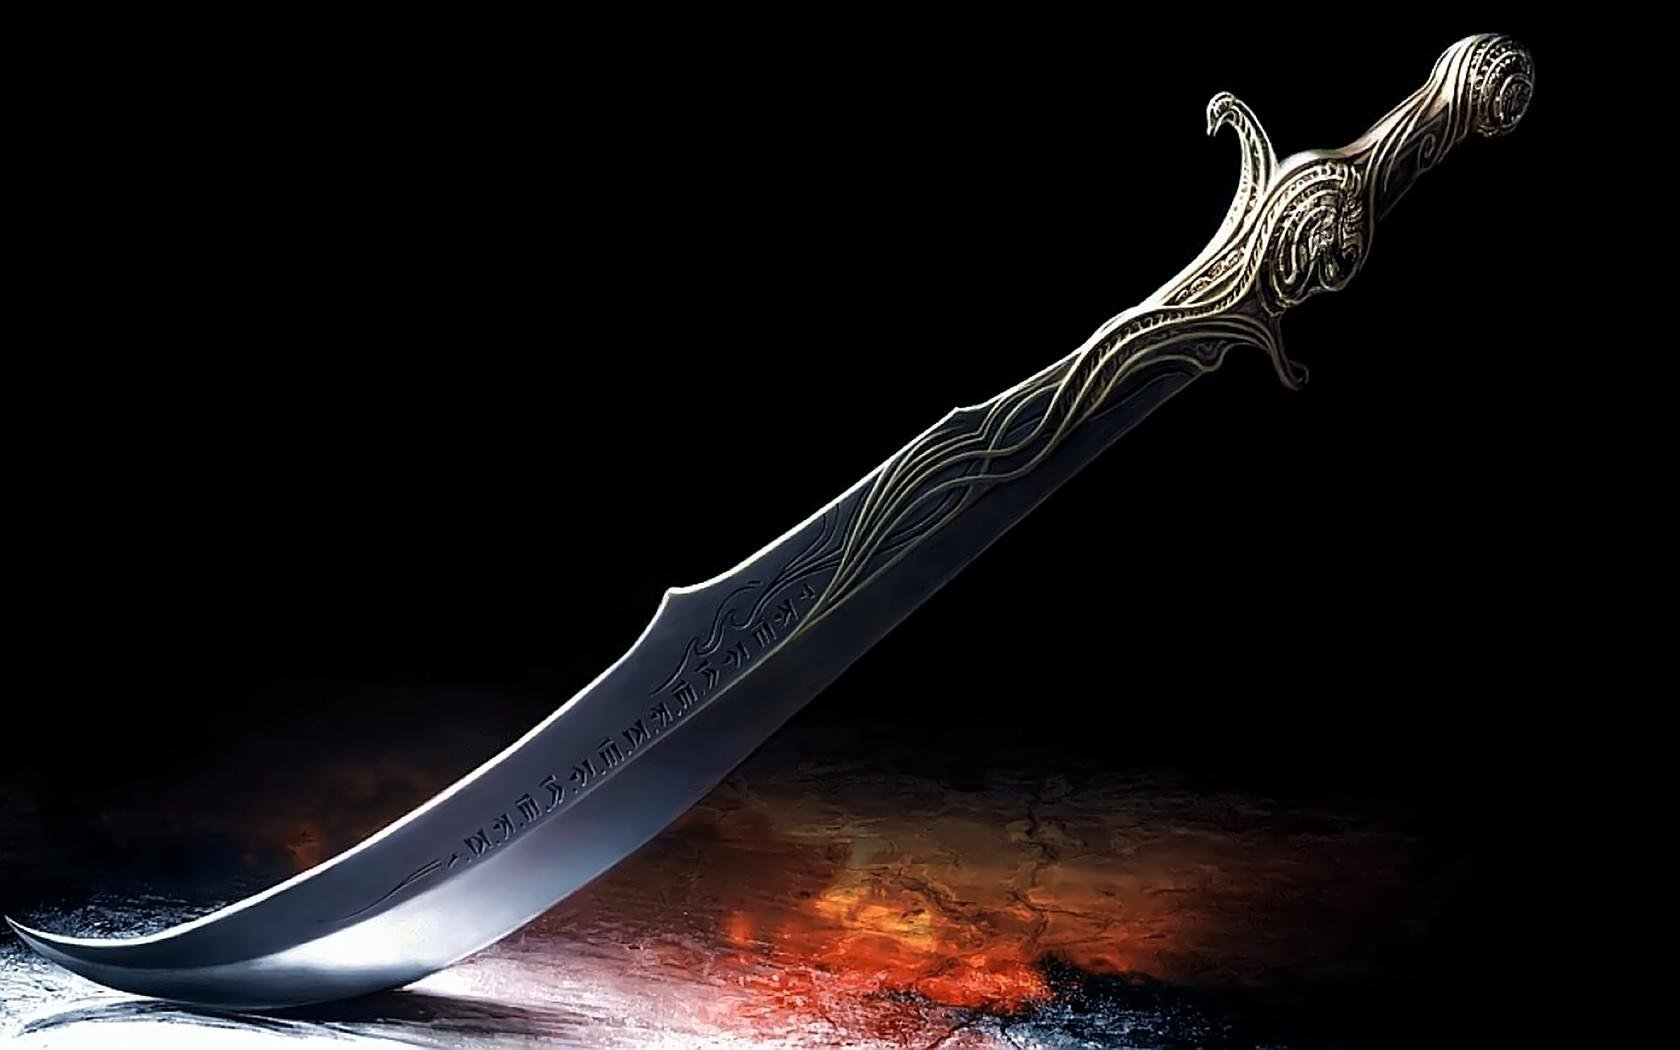 Great Sword Wallpapers HD Wallpapers 1680x1050